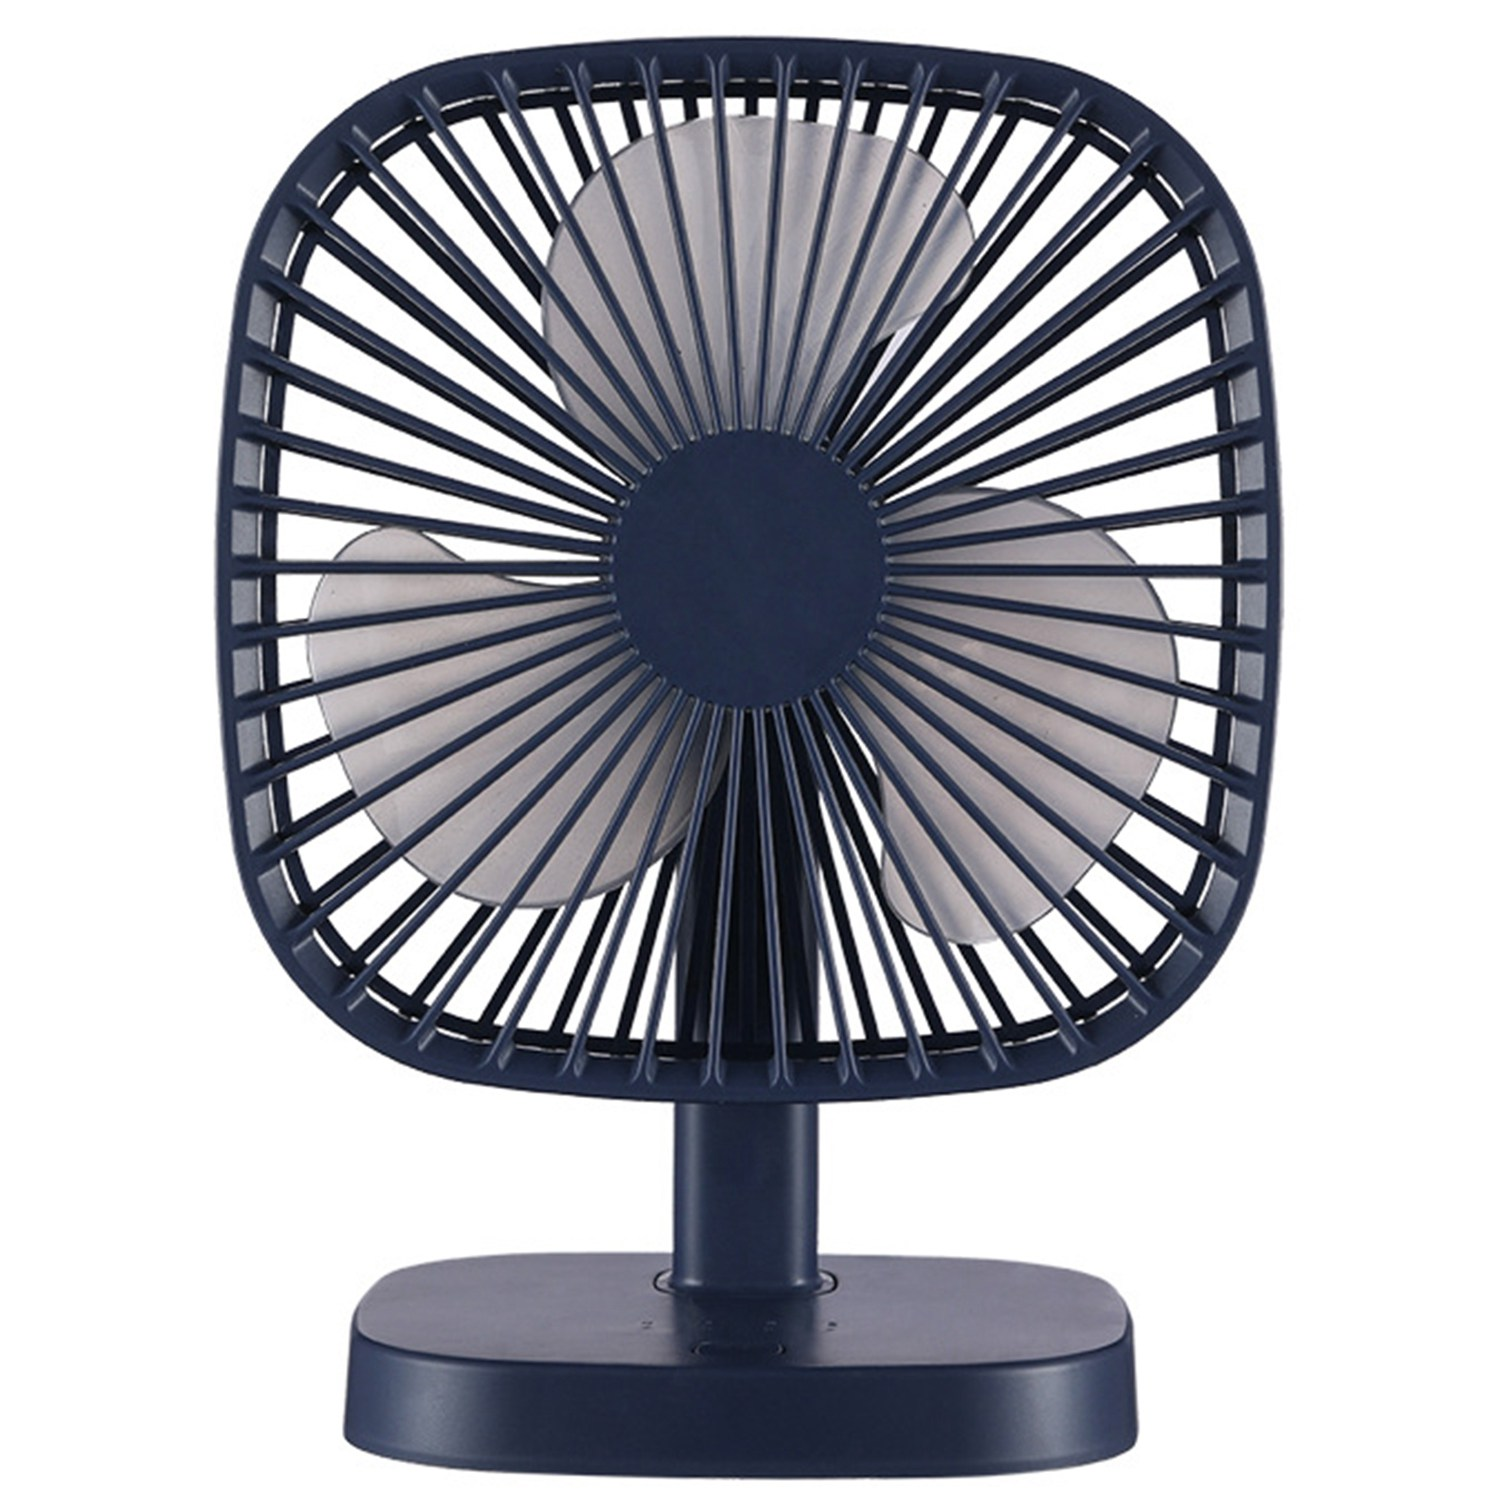 Portable Outdoor Cooling Fan Two AA Batteries Operated Cool Fan or Home Office Travel Tonysa Mini Handheld Cooling Fan Blue